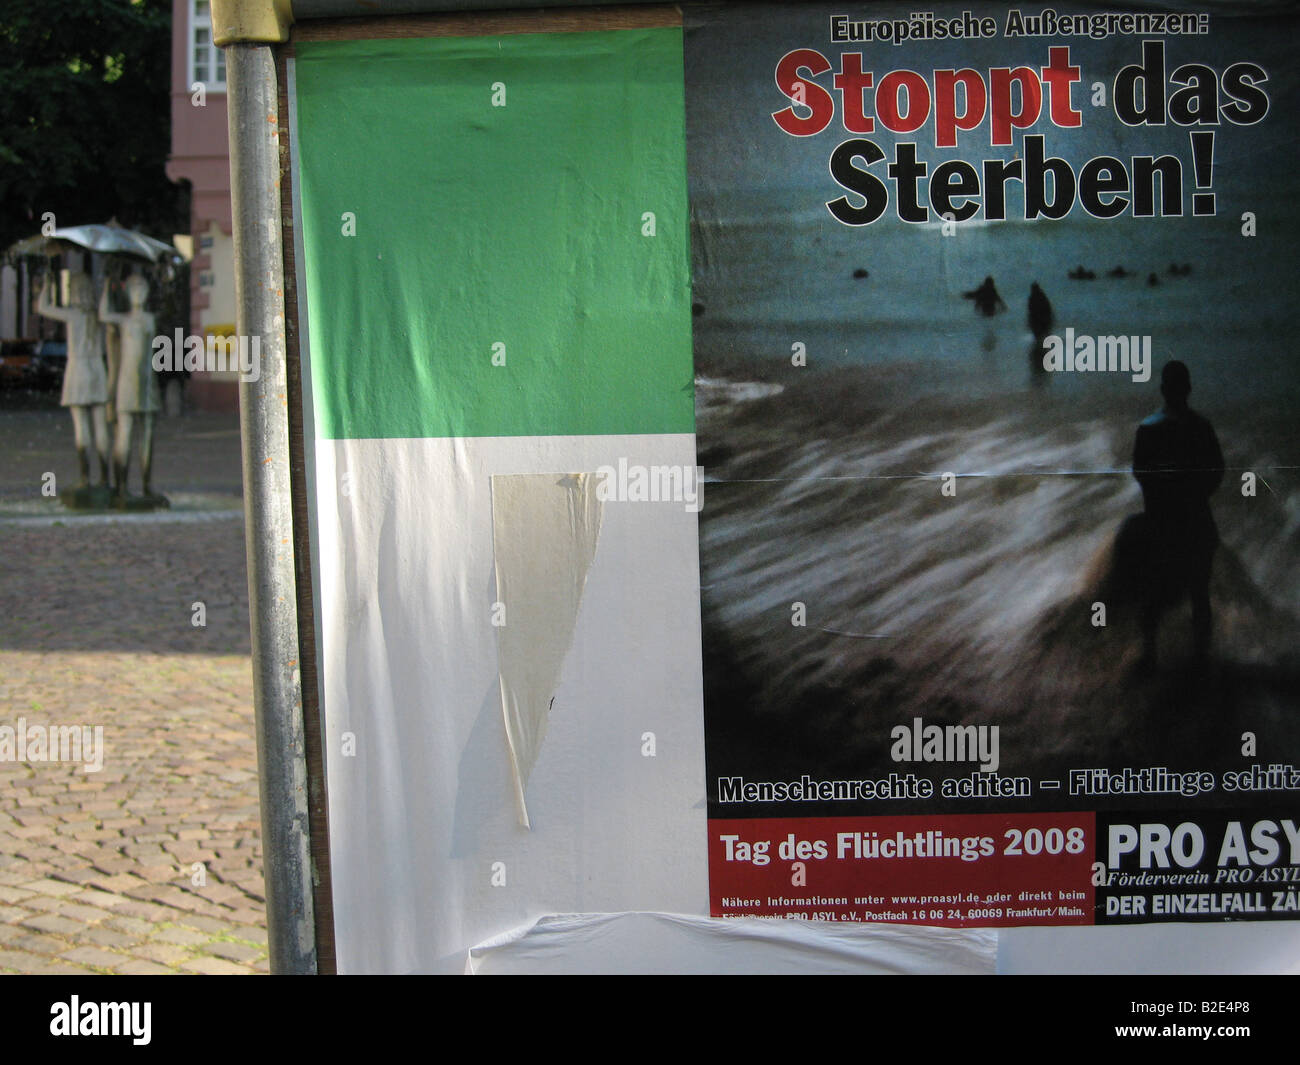 Advertising poster for an event organized by Amnesty International and Pro Asyl on a square in a german city - Stock Image